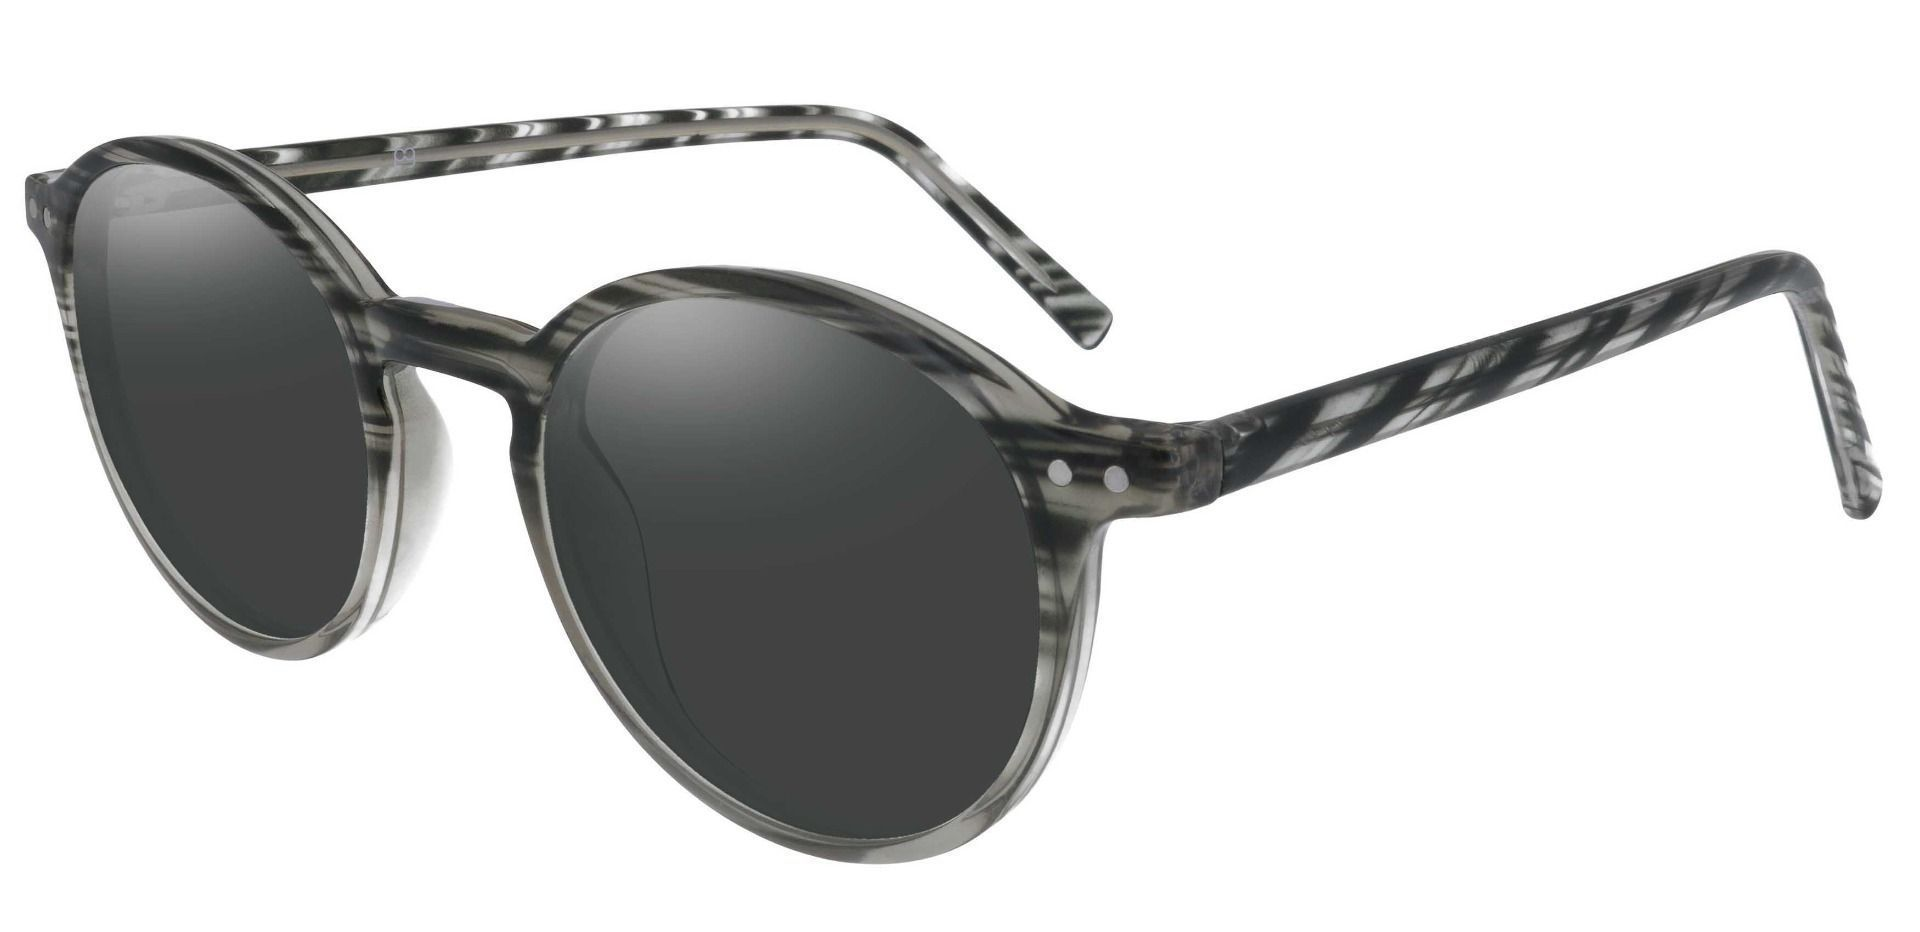 Harvard Round Prescription Sunglasses - Striped Frame With Gray Lenses